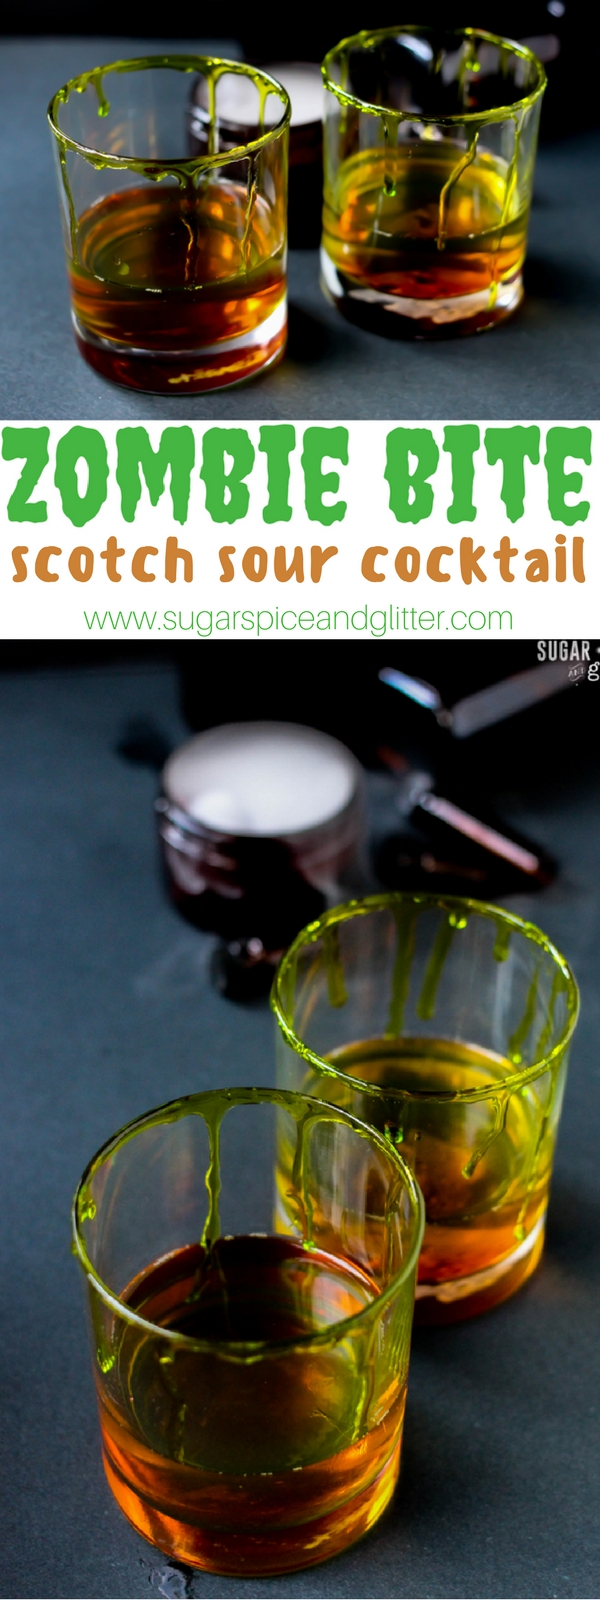 A delicious way to enjoy scotch - a classic Scotch Sour Cocktail with a Halloween twist. This Zombie Bite cocktail grabs your attention with a sour note, then lets you settle in to the sharp smokiness of the scotch and then mellows back out with a lingering lemon flavor